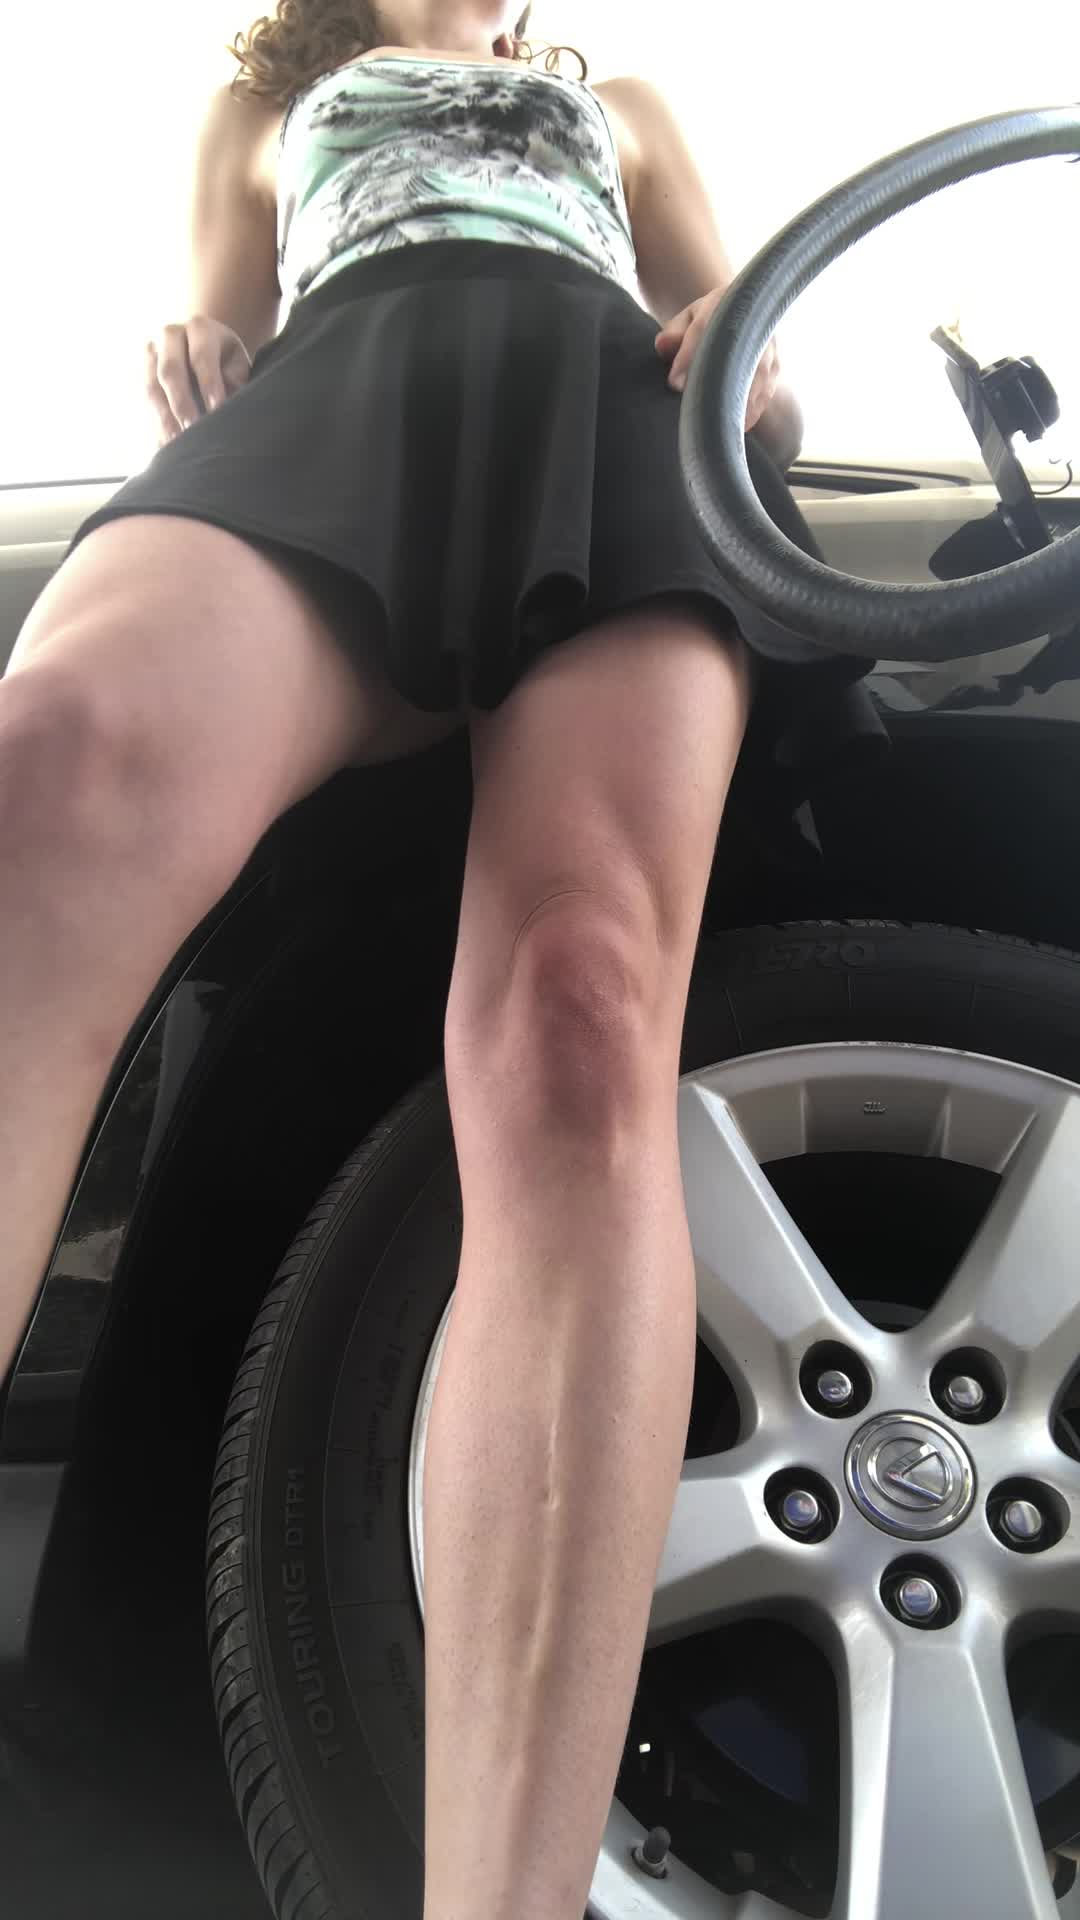 I love to service myself at the gas station